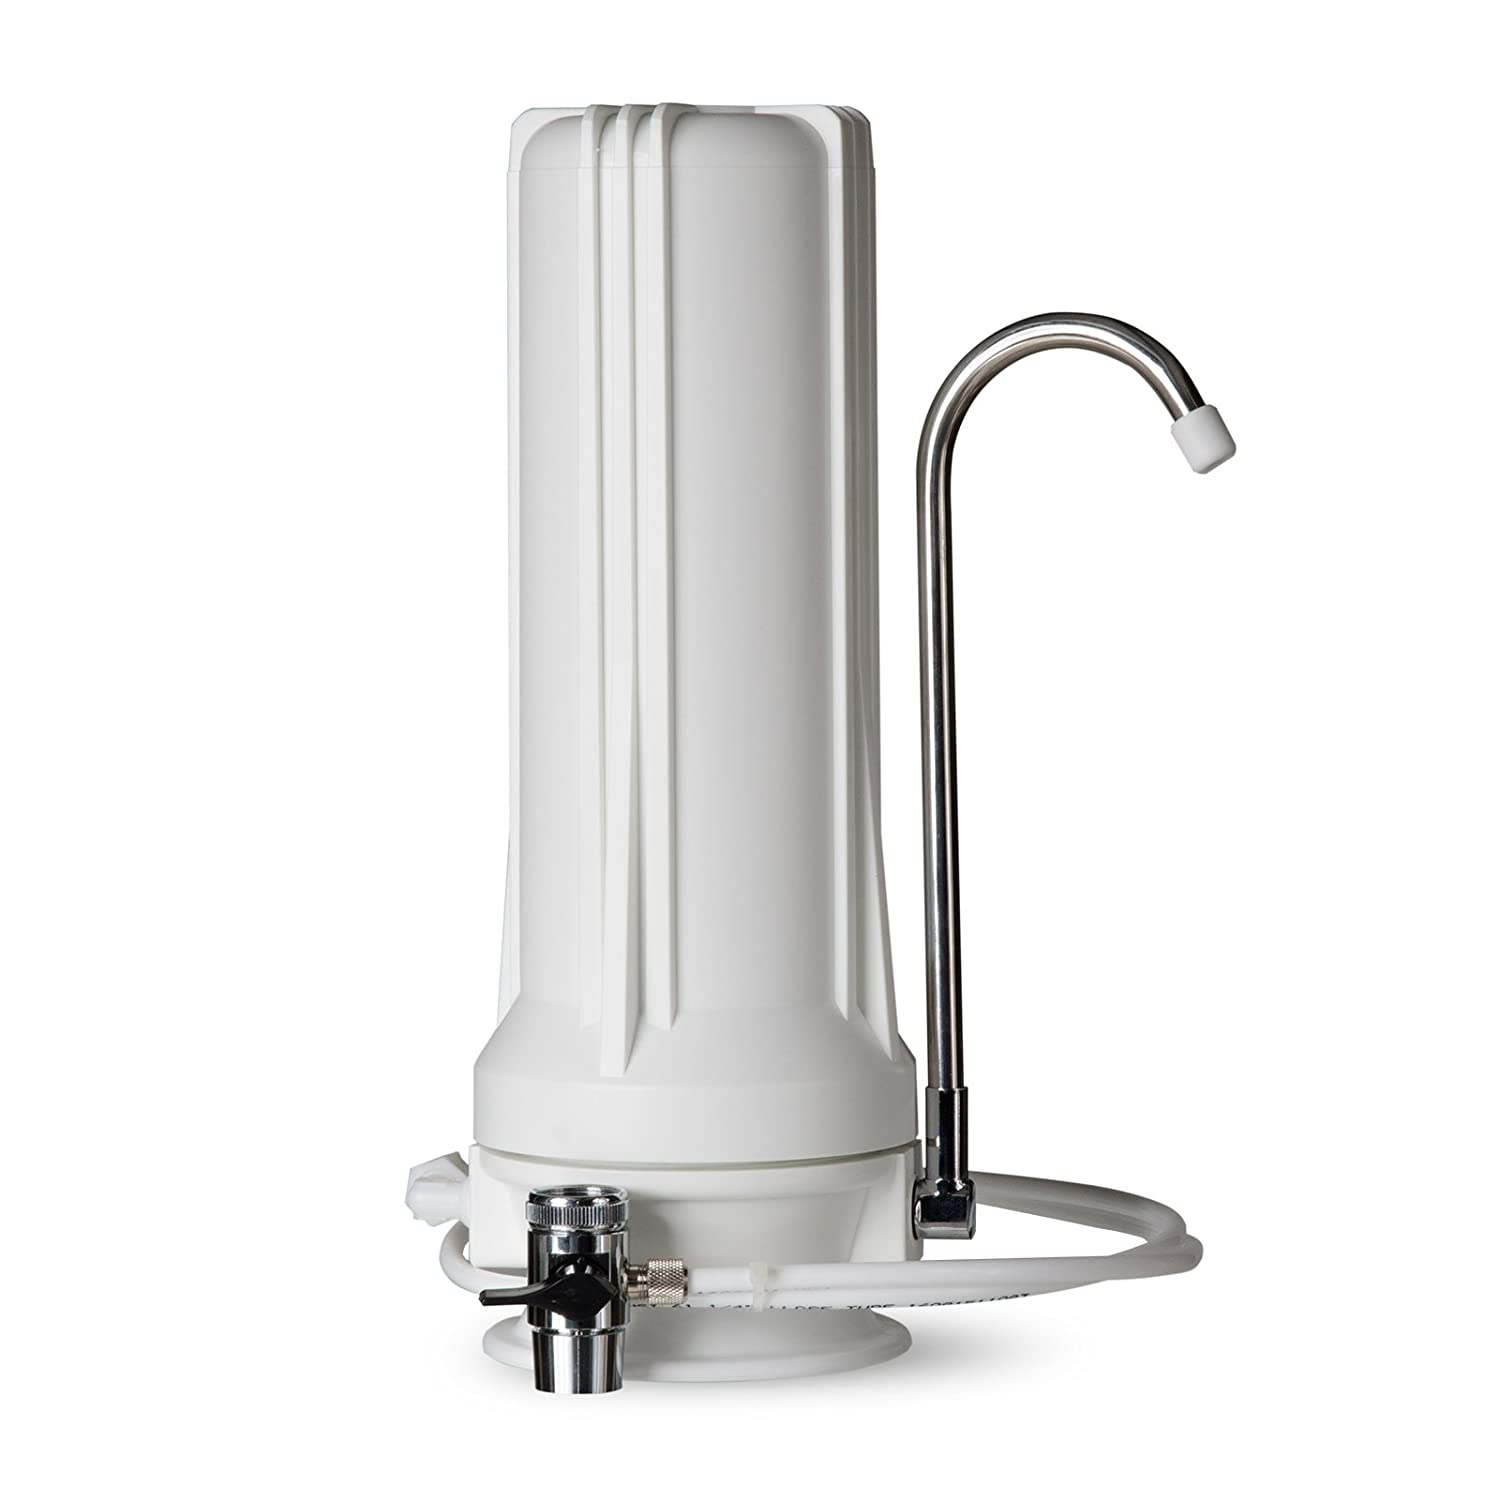 iSpring CT10 multi-stage countertop water filter system clear water dispenser with faucet adapter